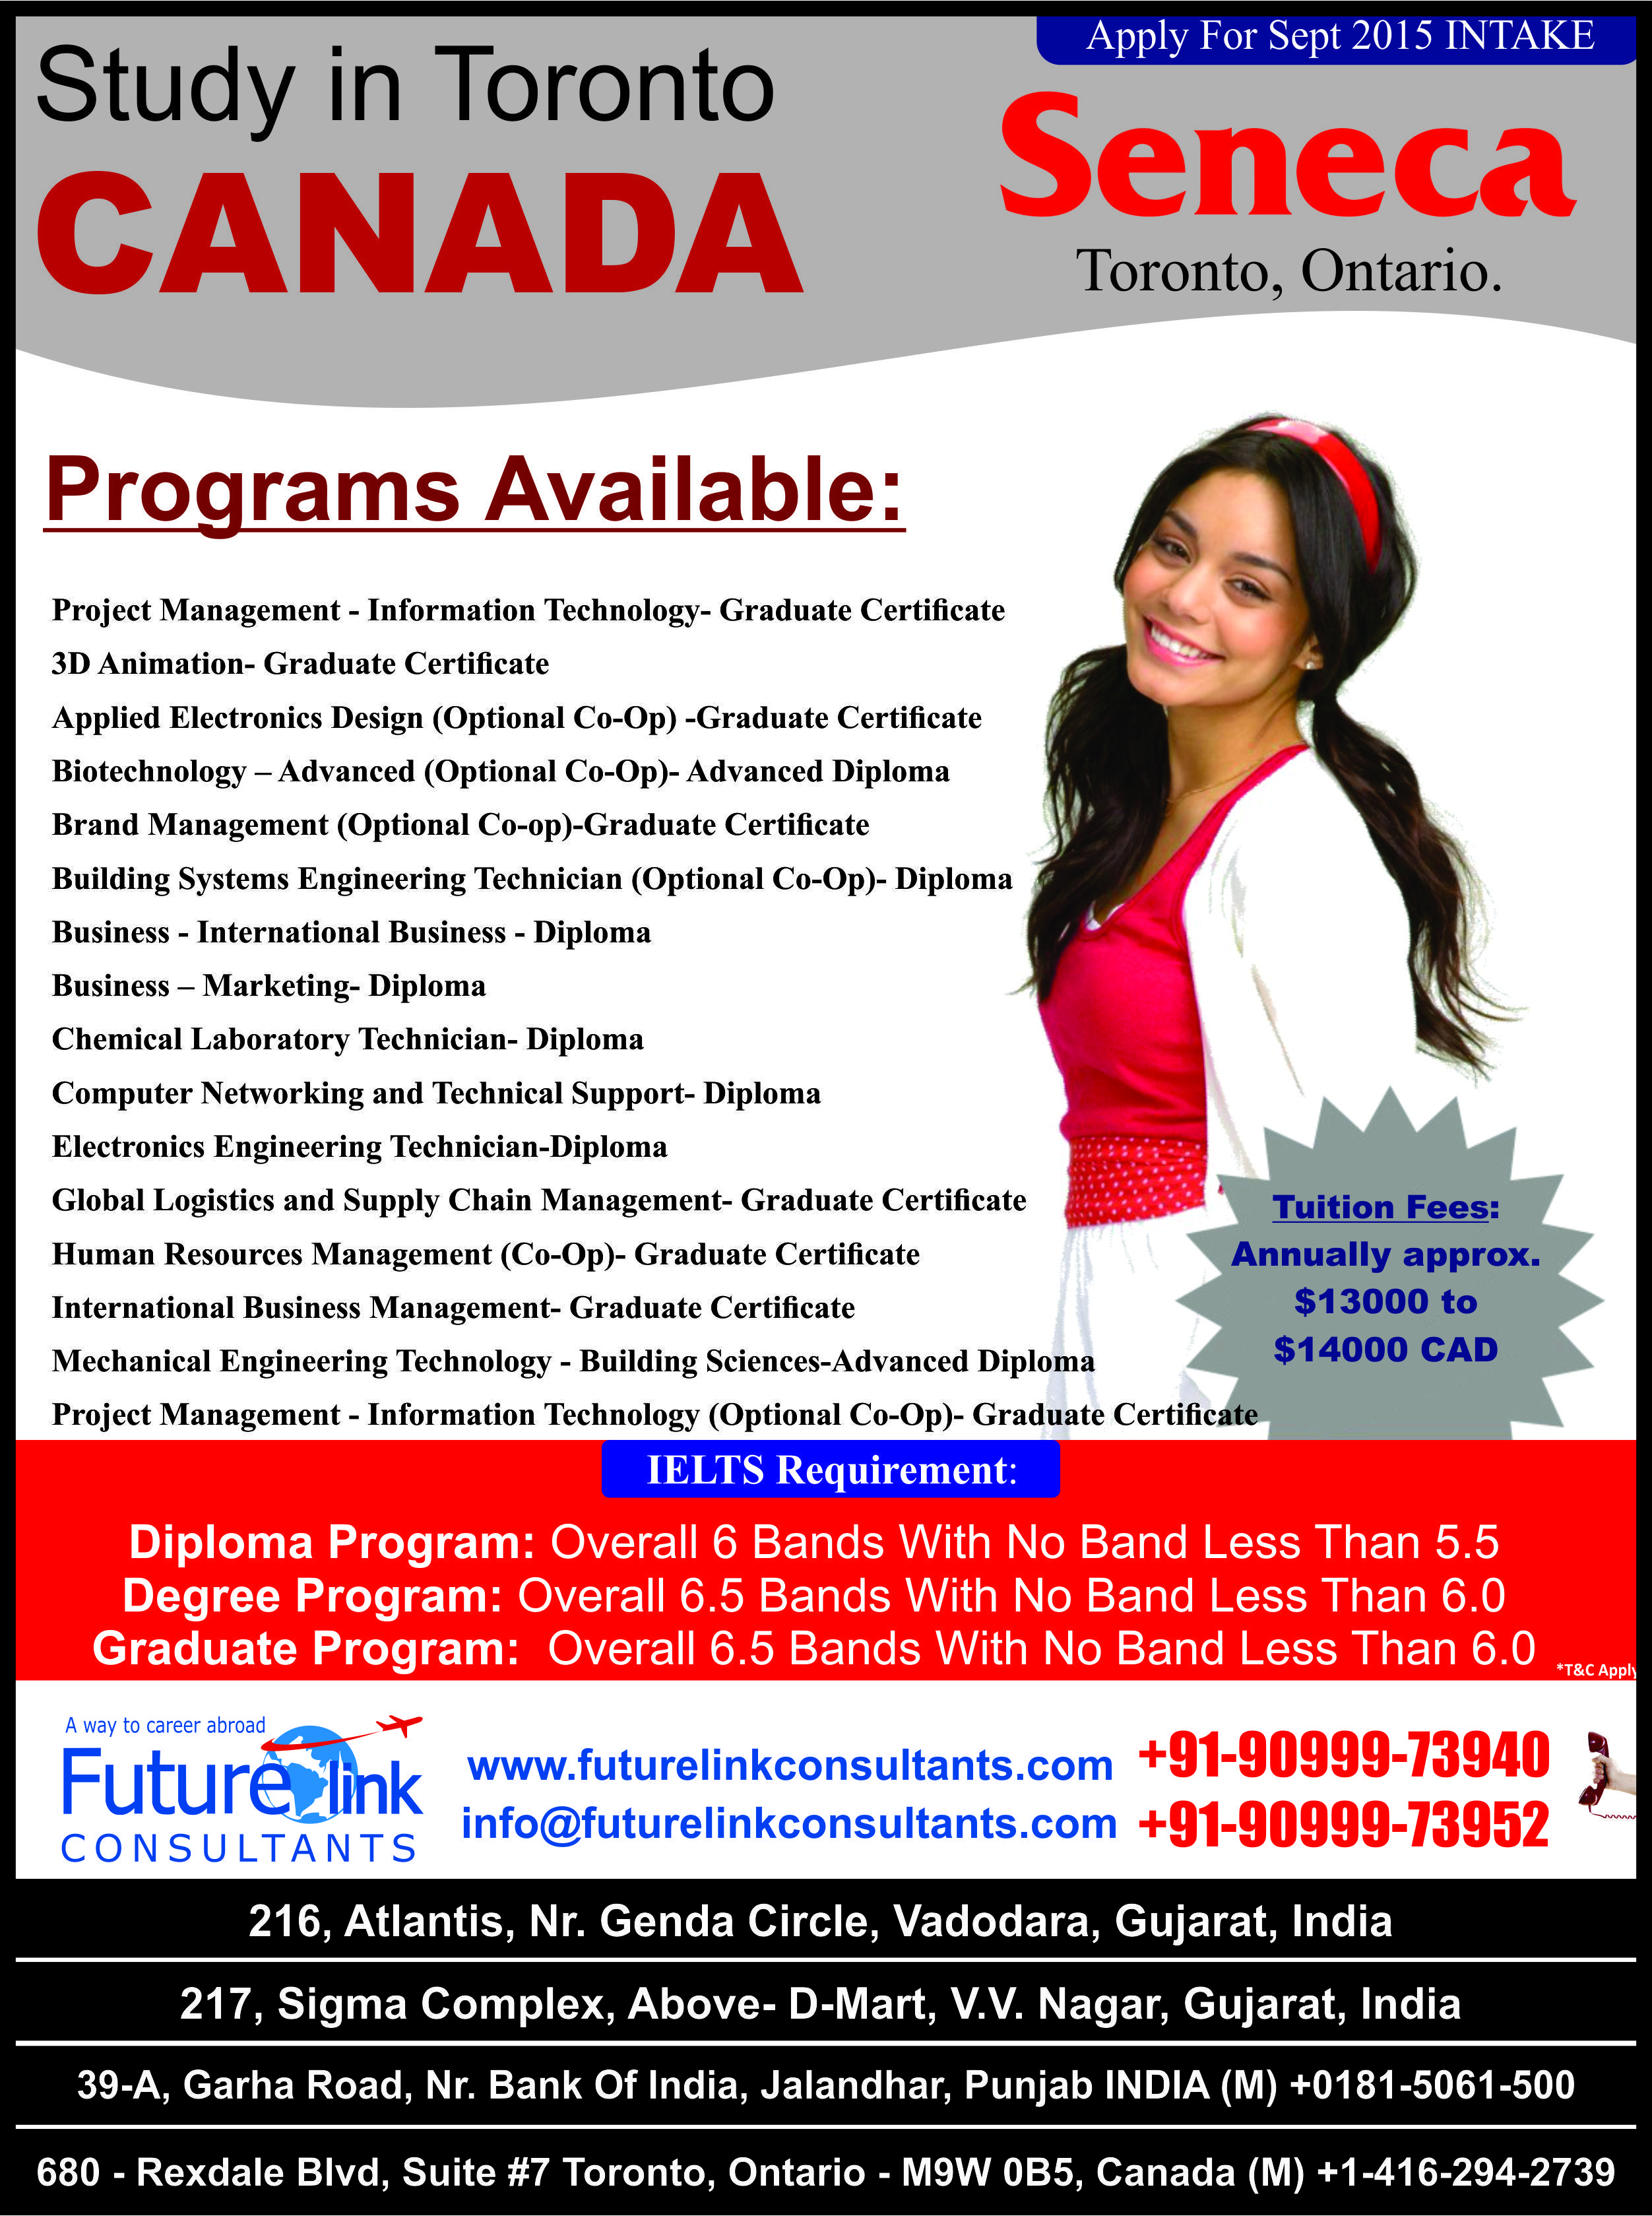 Study In Canada Build Your Skills And Reinforce Your Career Abroad